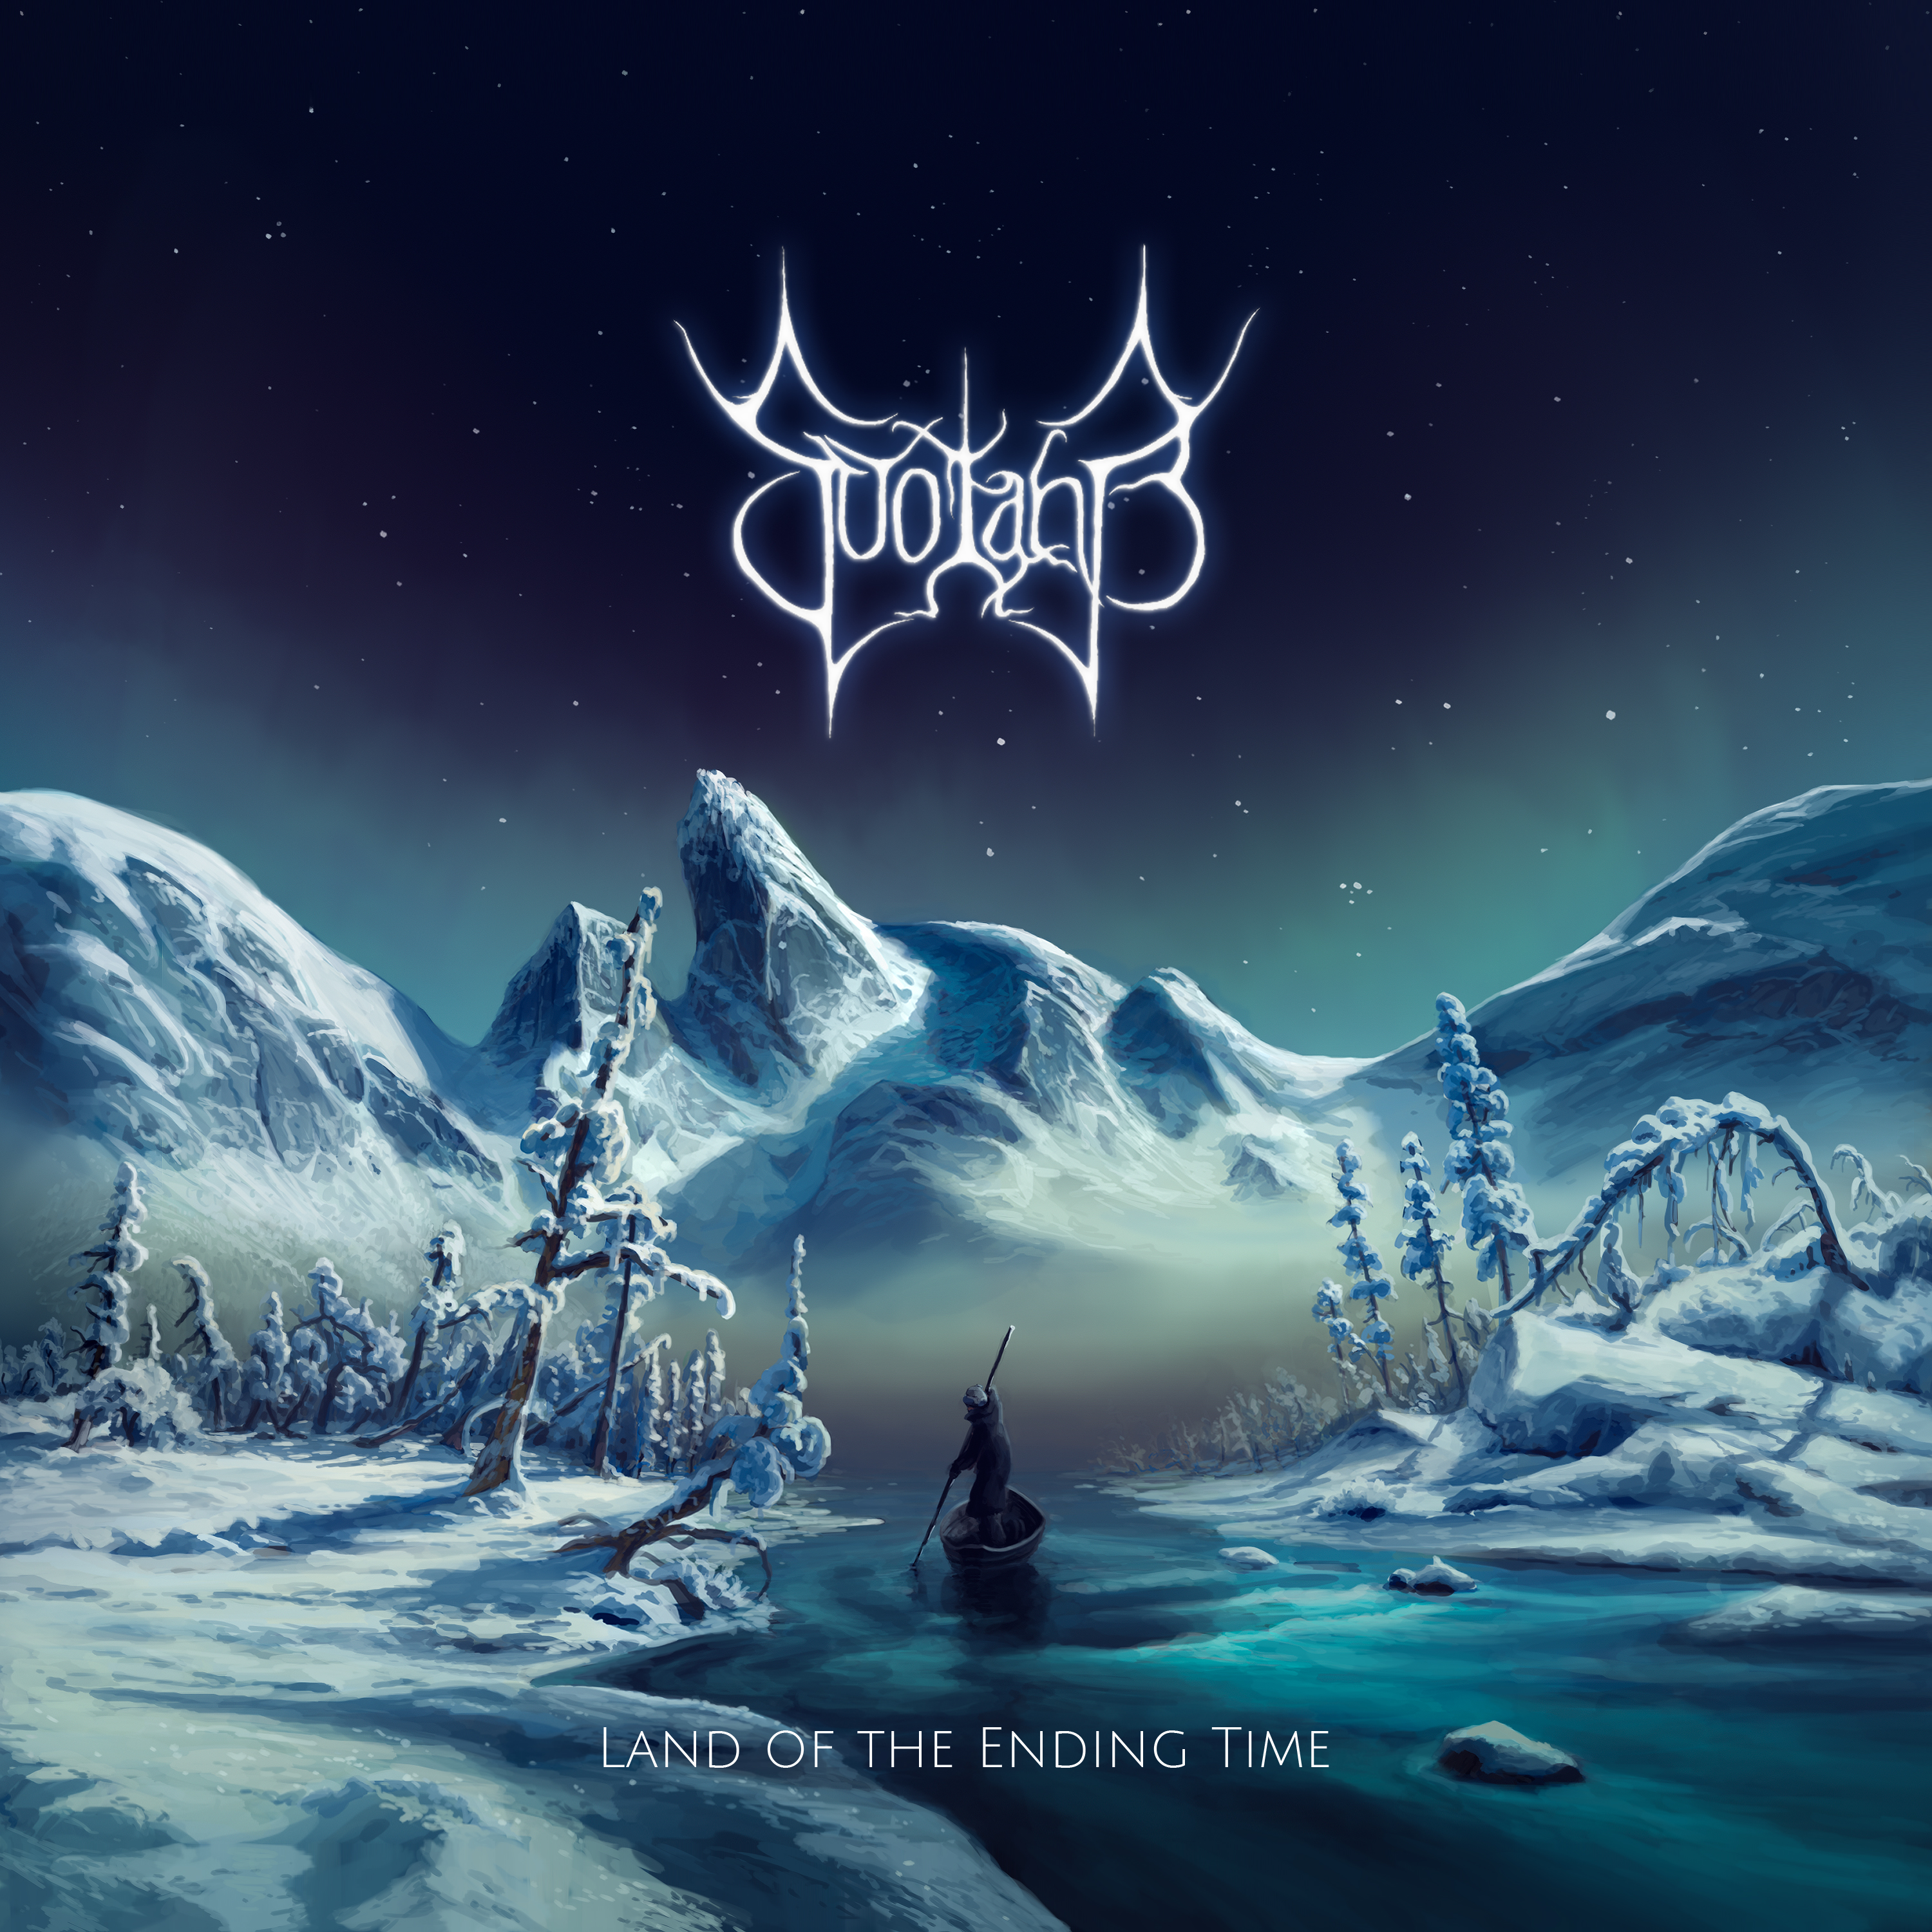 Suotana – Land Of The Ending Time